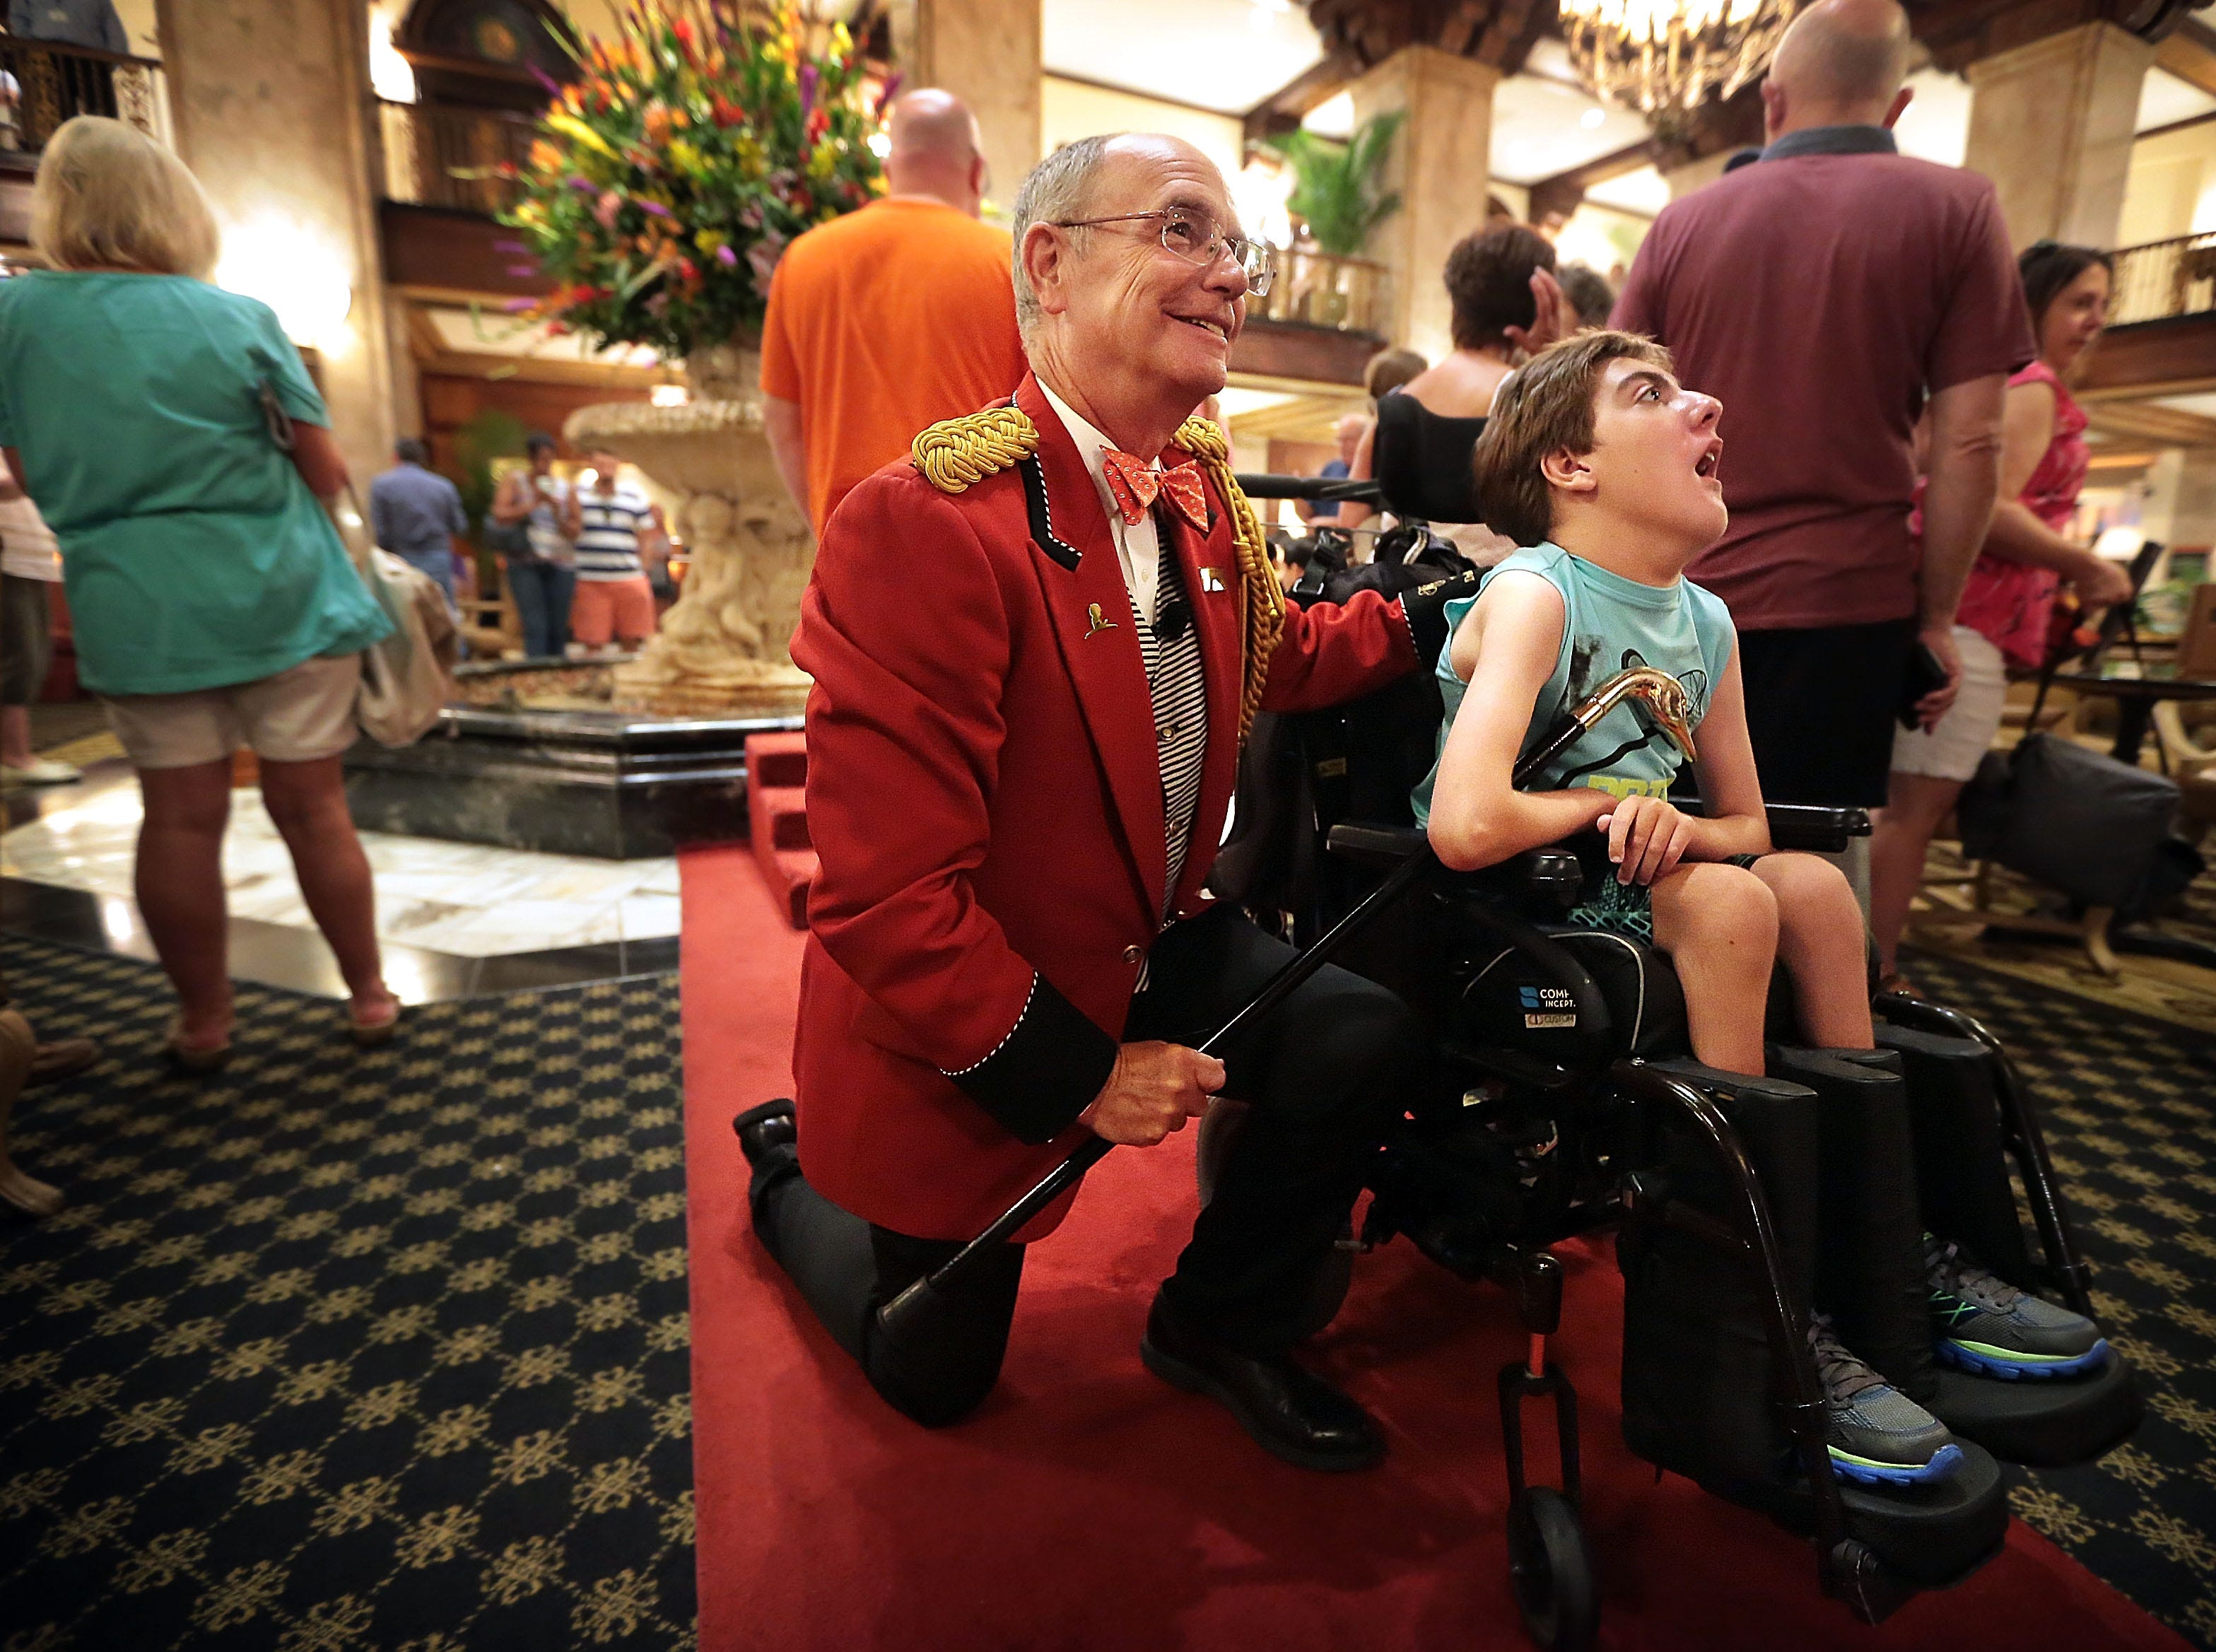 Shelby County Historian Jimmy Ogle, left, poses for a picture with Todd Brayman of Penaukee, Wis., during his first day on the job as the Peabody duckmaster Sept. 21, 2016. Ogle is the hotel's 6th official duckmaster replacing Anthony Petrina who held the post for five years.